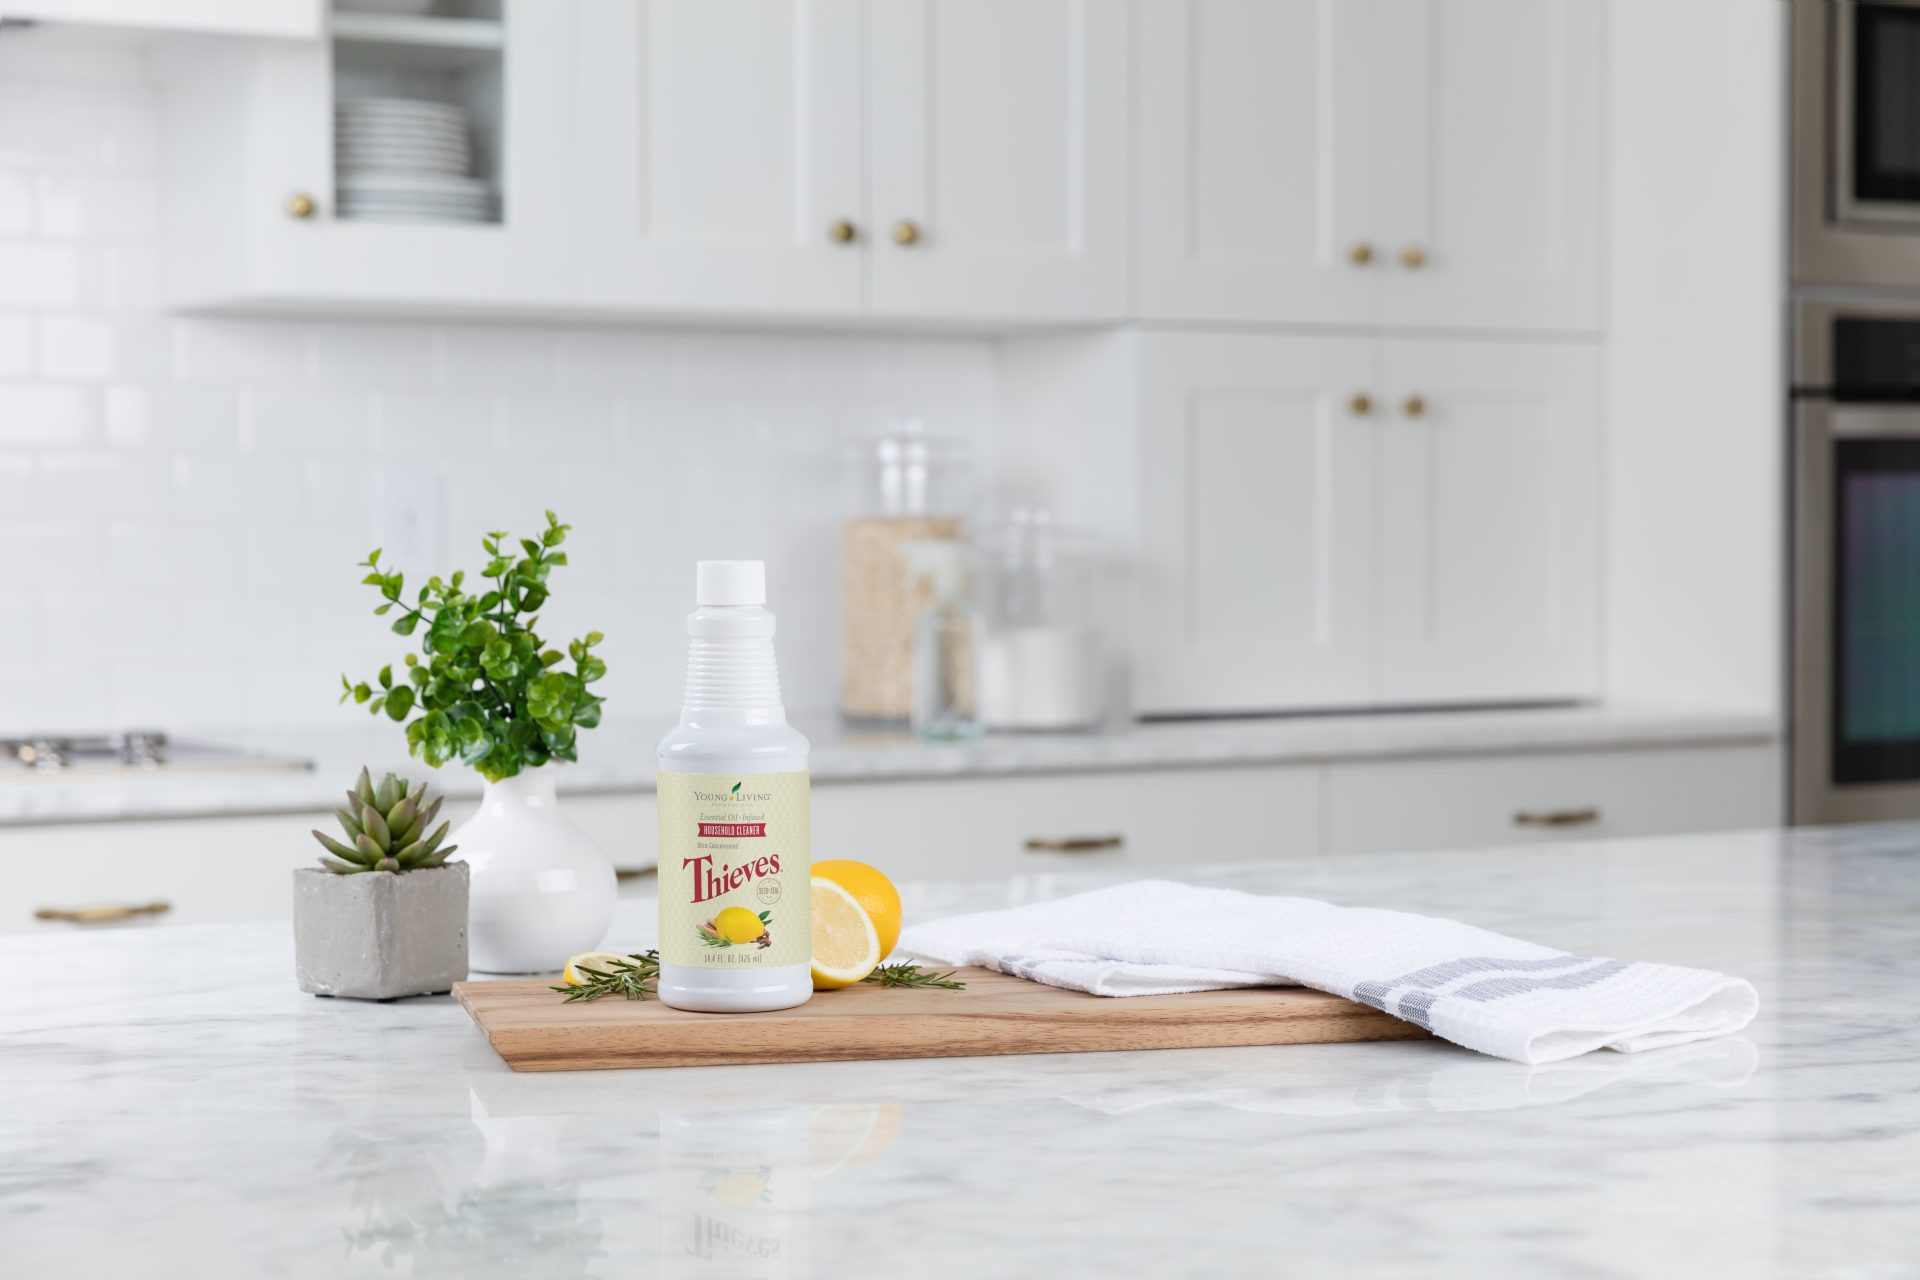 Thieves household cleaner on a marble kitchen counter